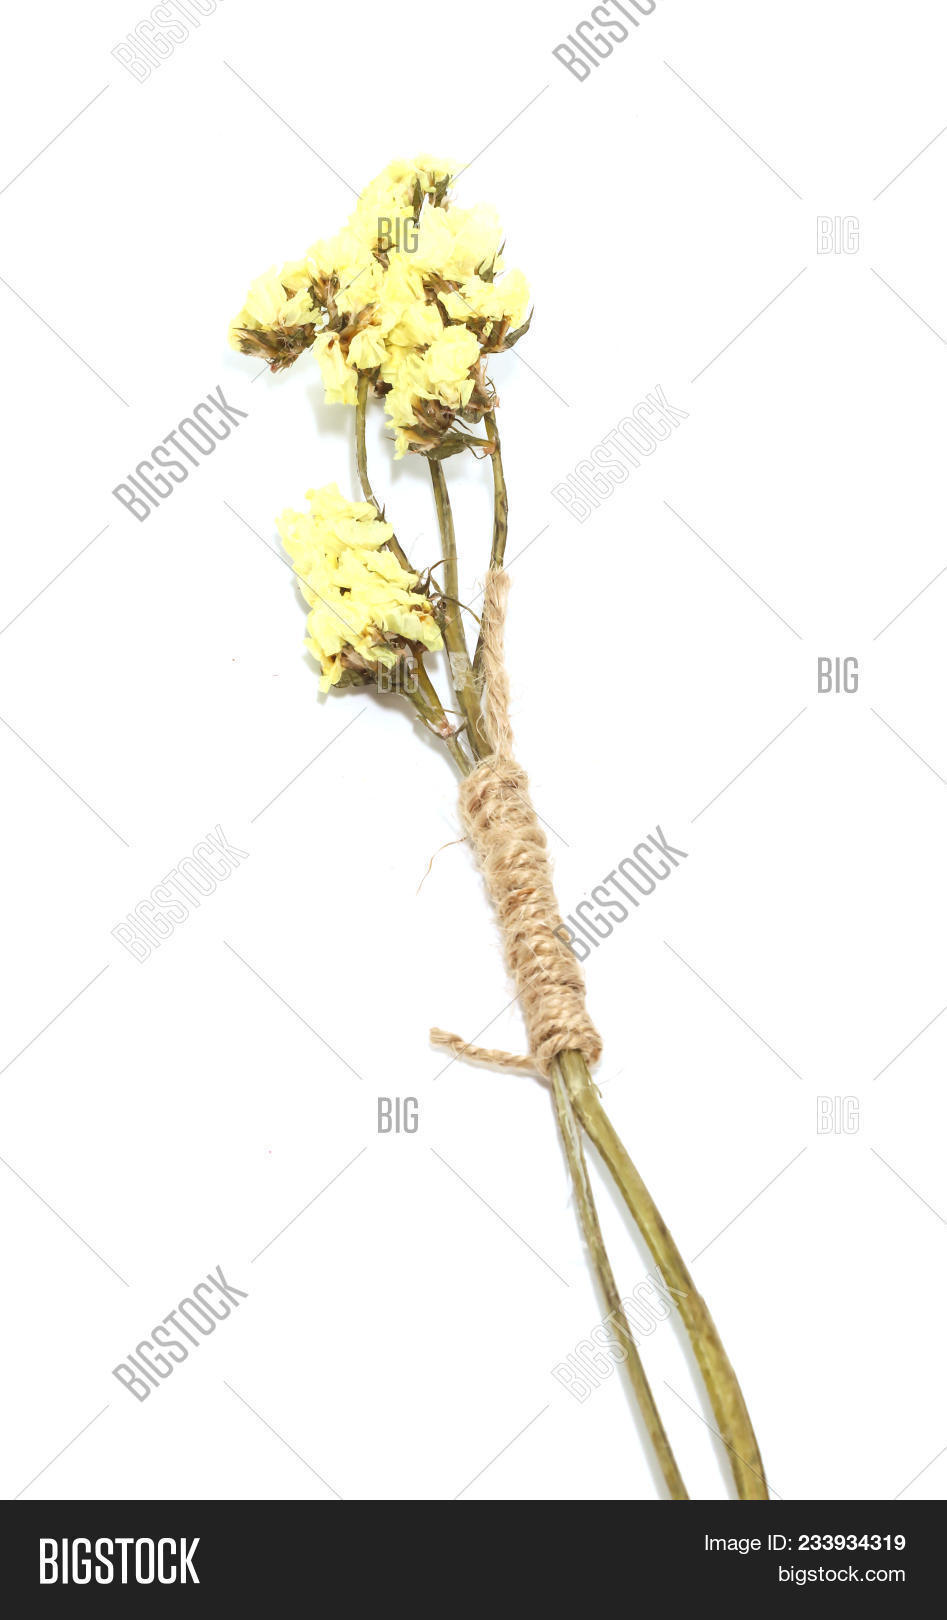 Single yellow statice image photo free trial bigstock single yellow statice flower background use for decoration on white background mightylinksfo